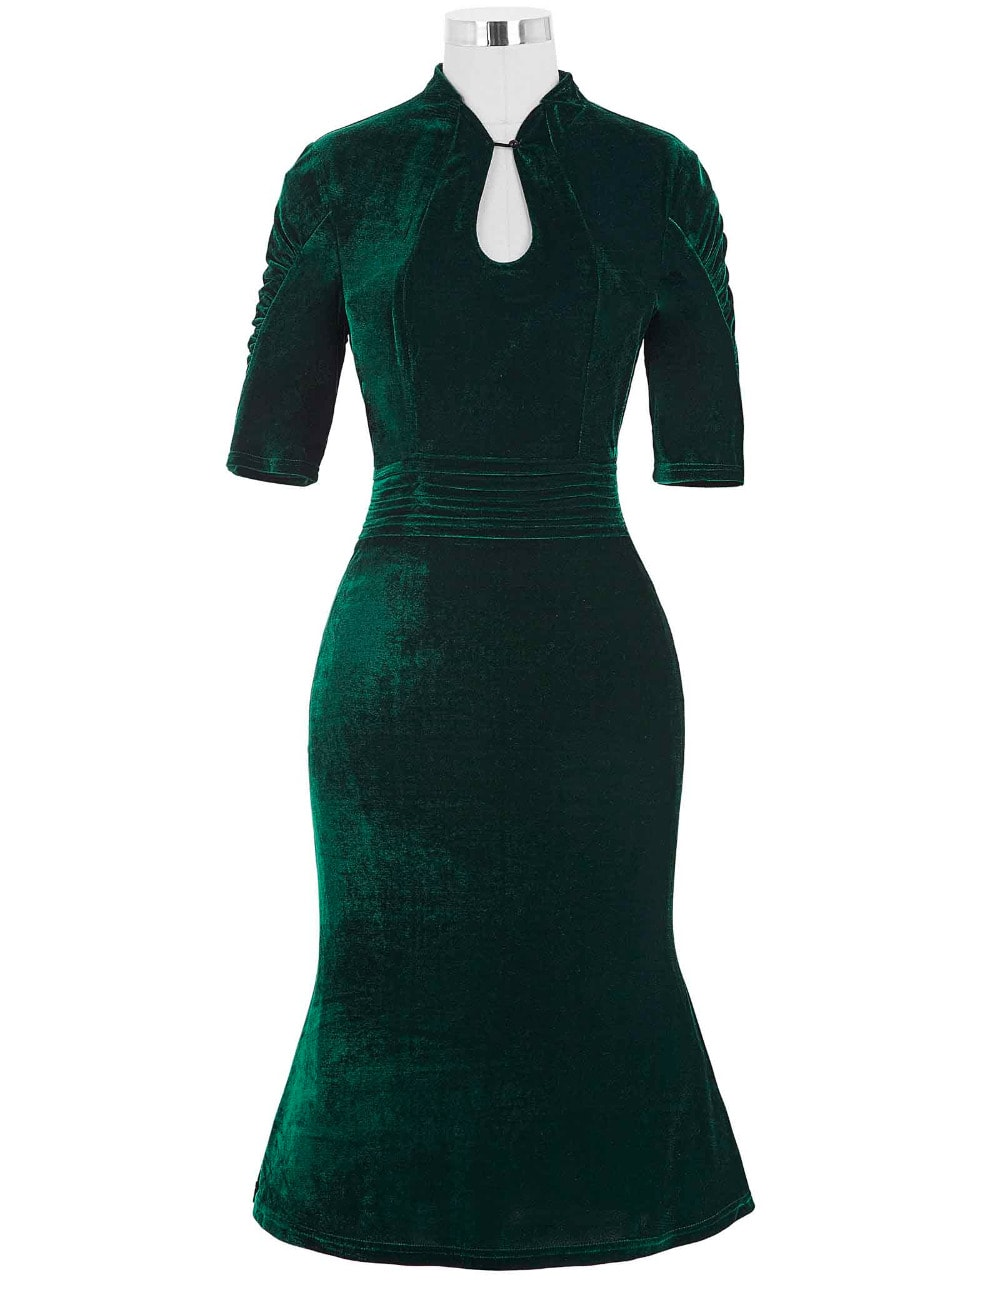 shanghai-lilly-emerald-velvet-vintage-dress